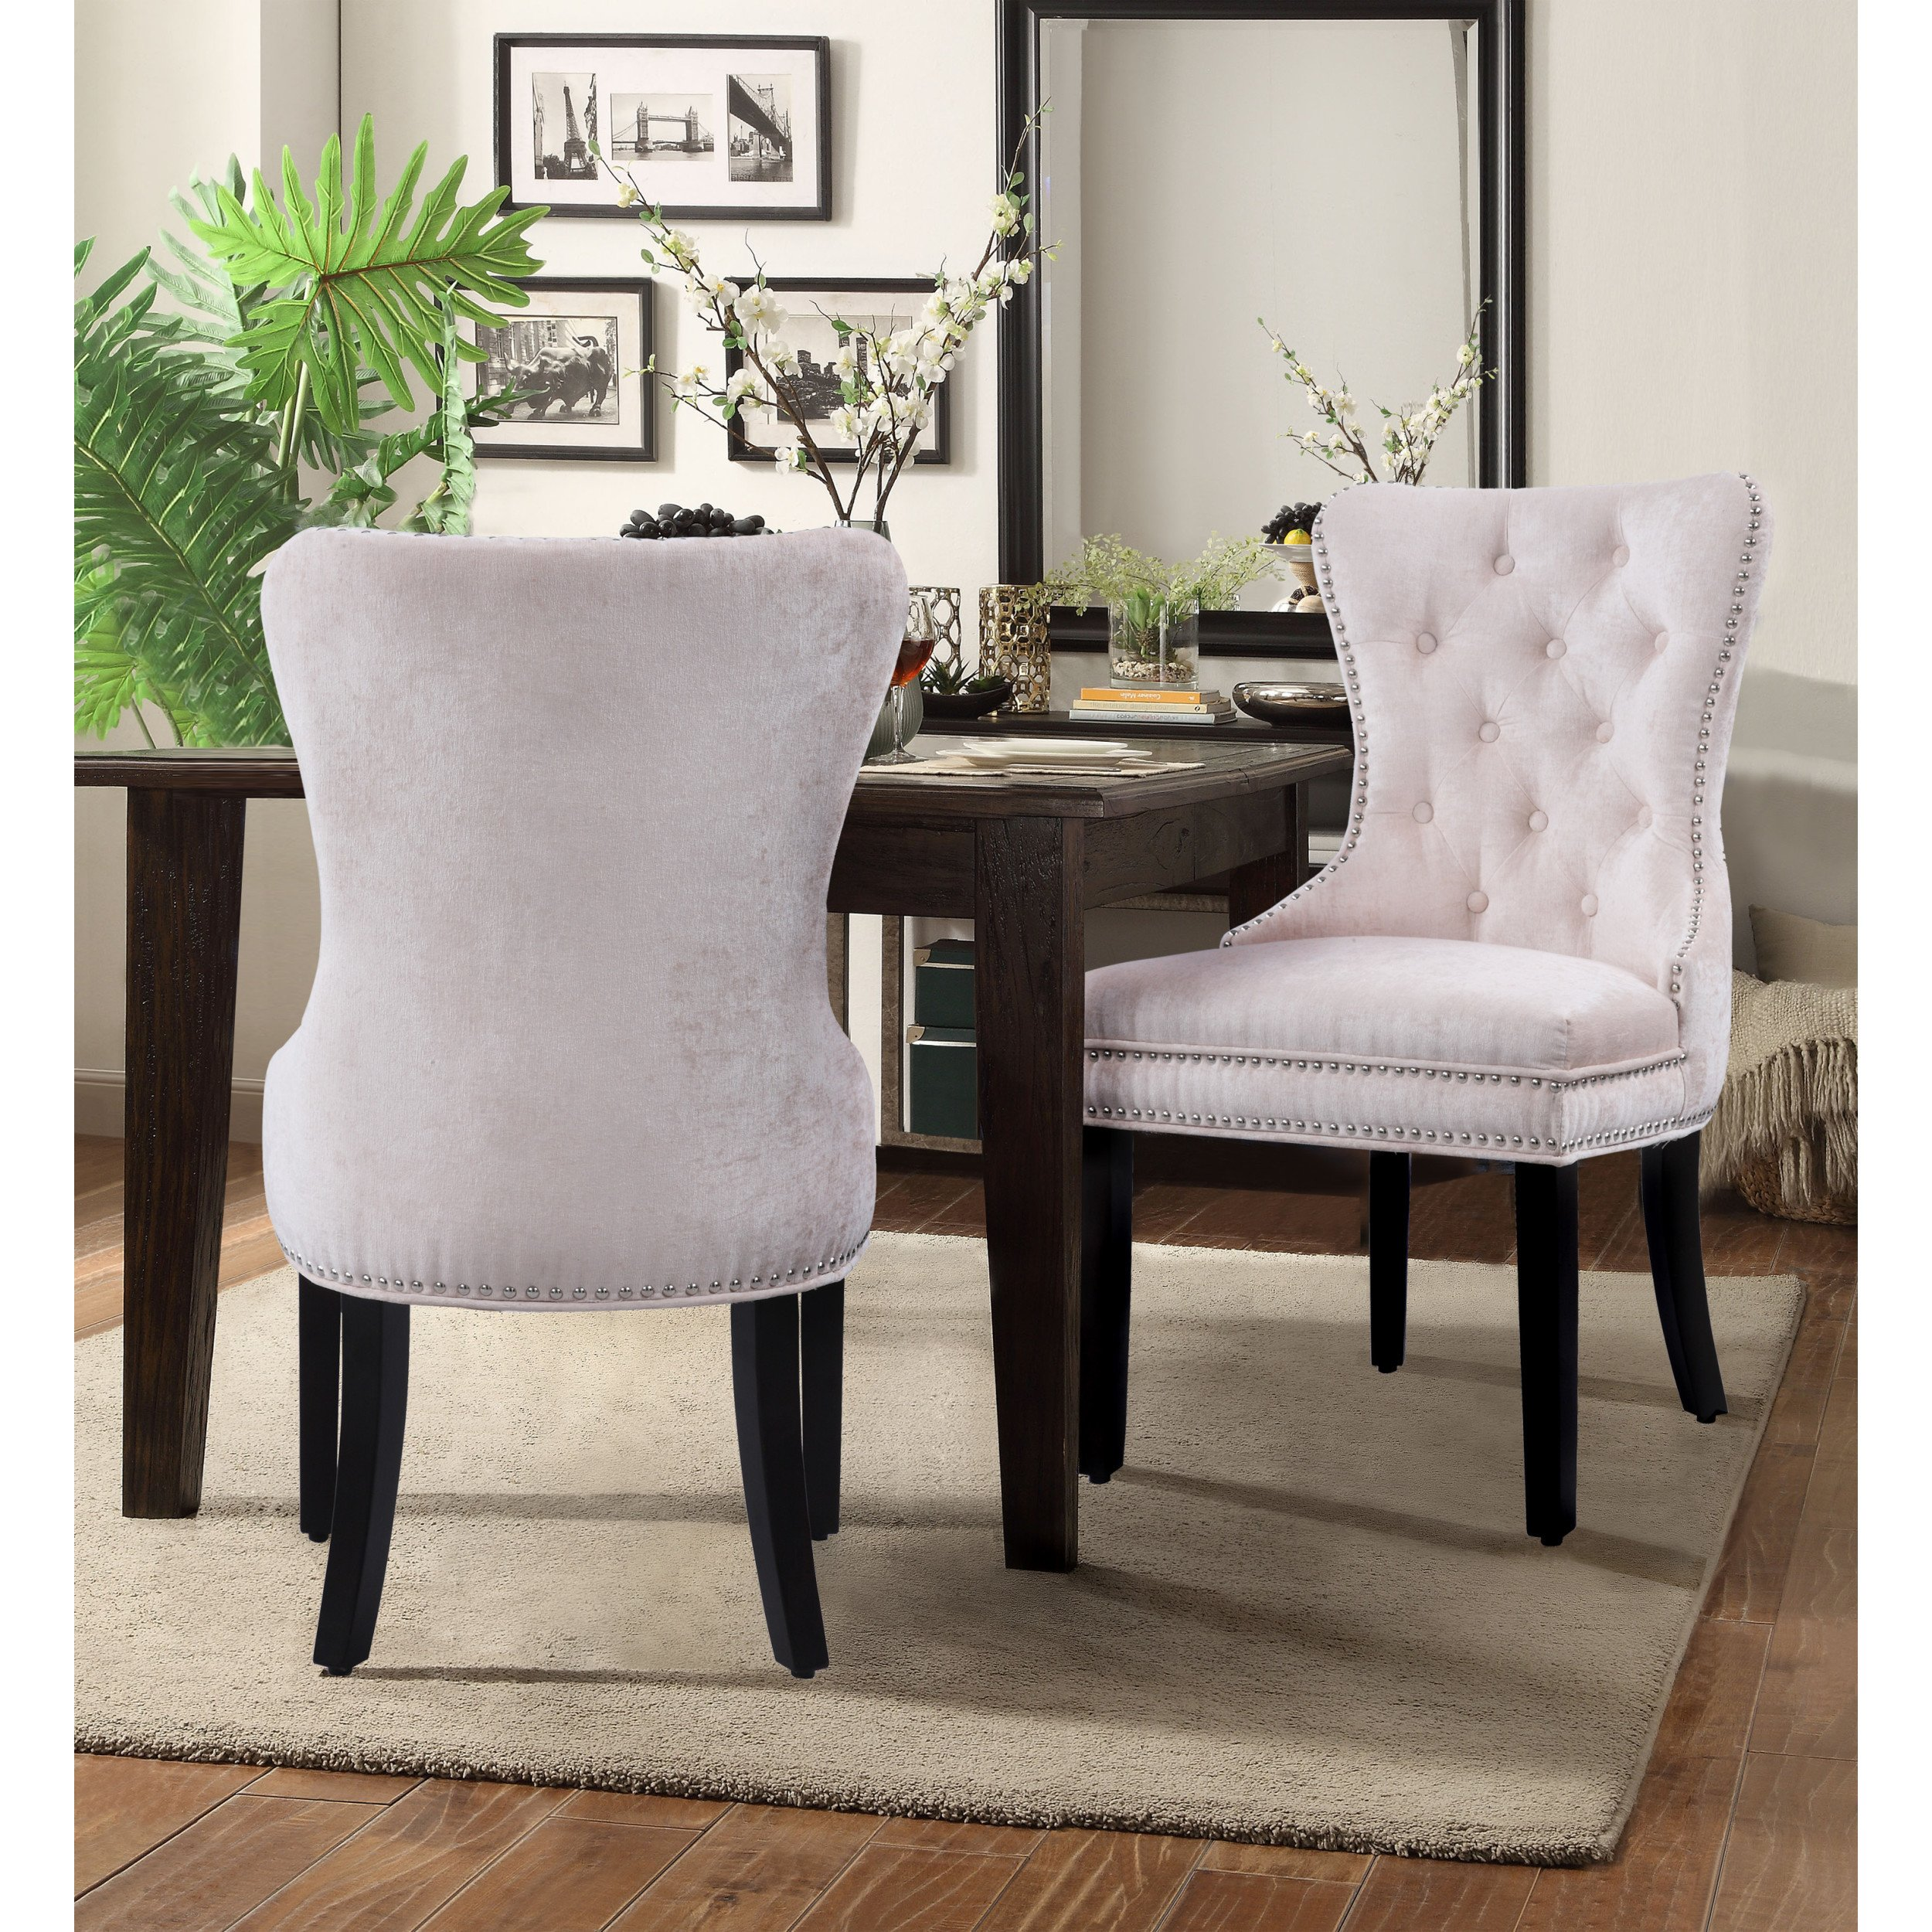 chic home elizabeth velvet upholstery dining accent chairs set furniture nightstand bedside table black nest tables telescope oval outdoor small with folding sides modern wood